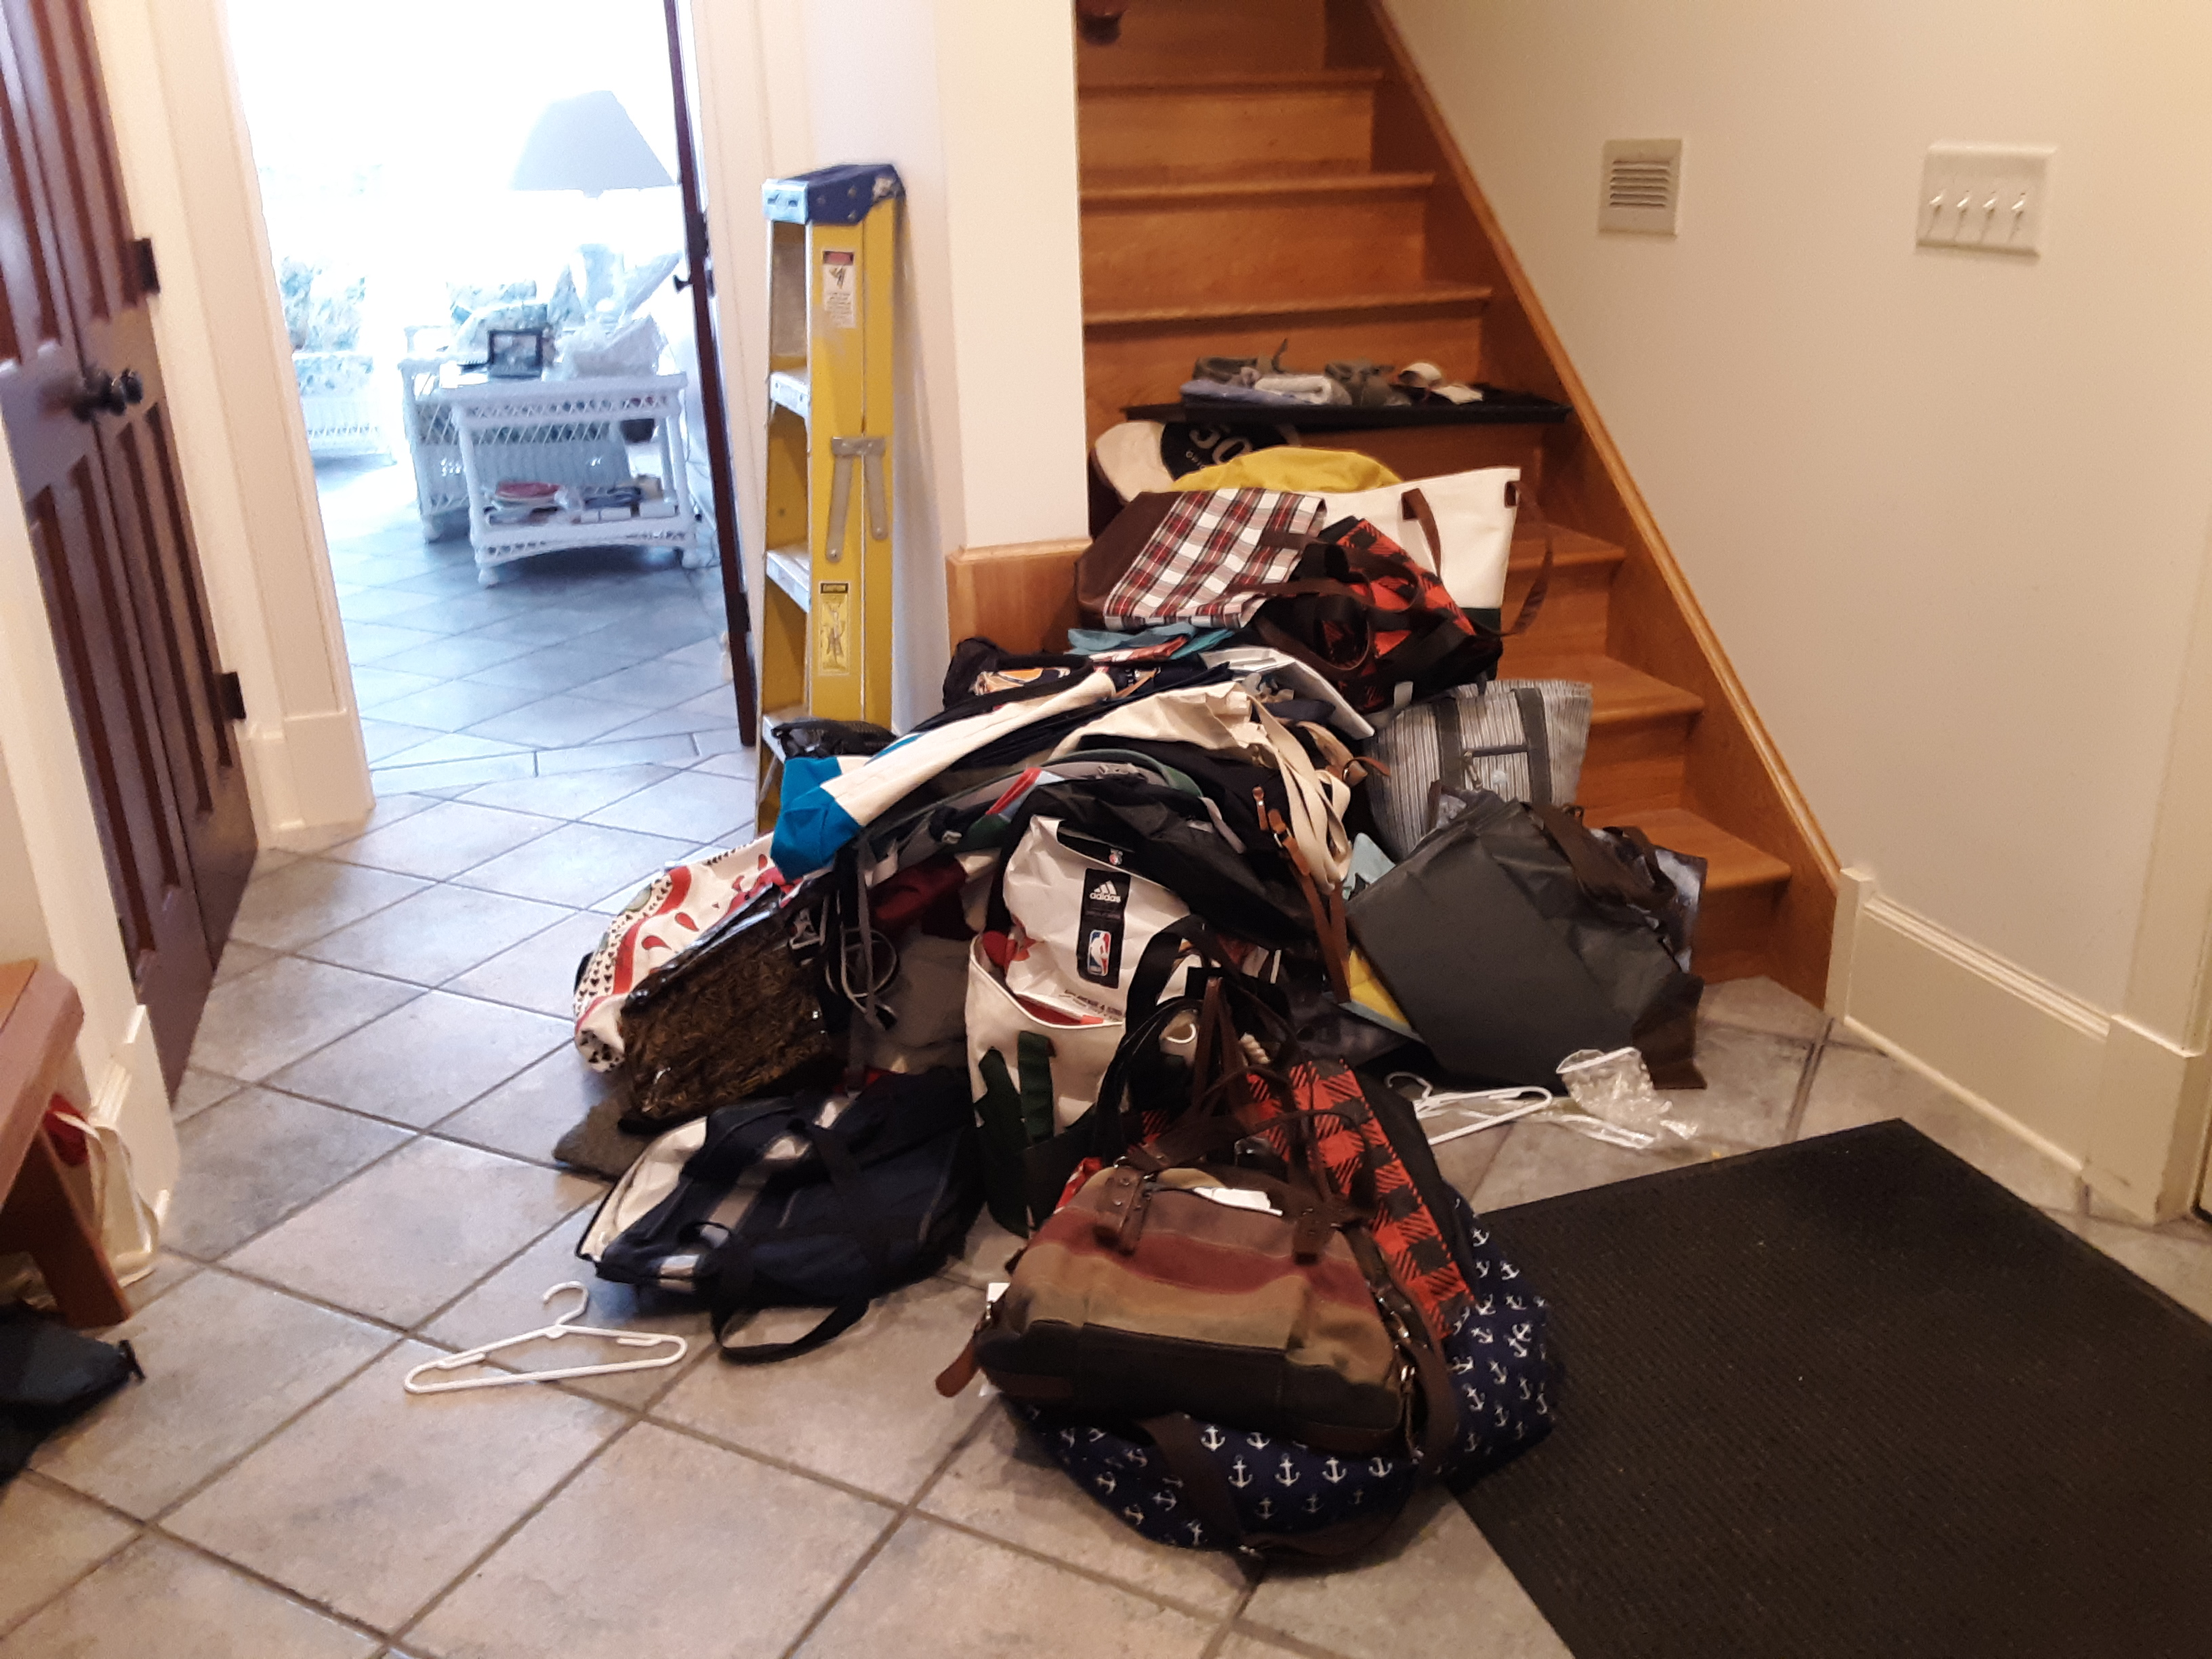 The hallway floor, with items from the closet